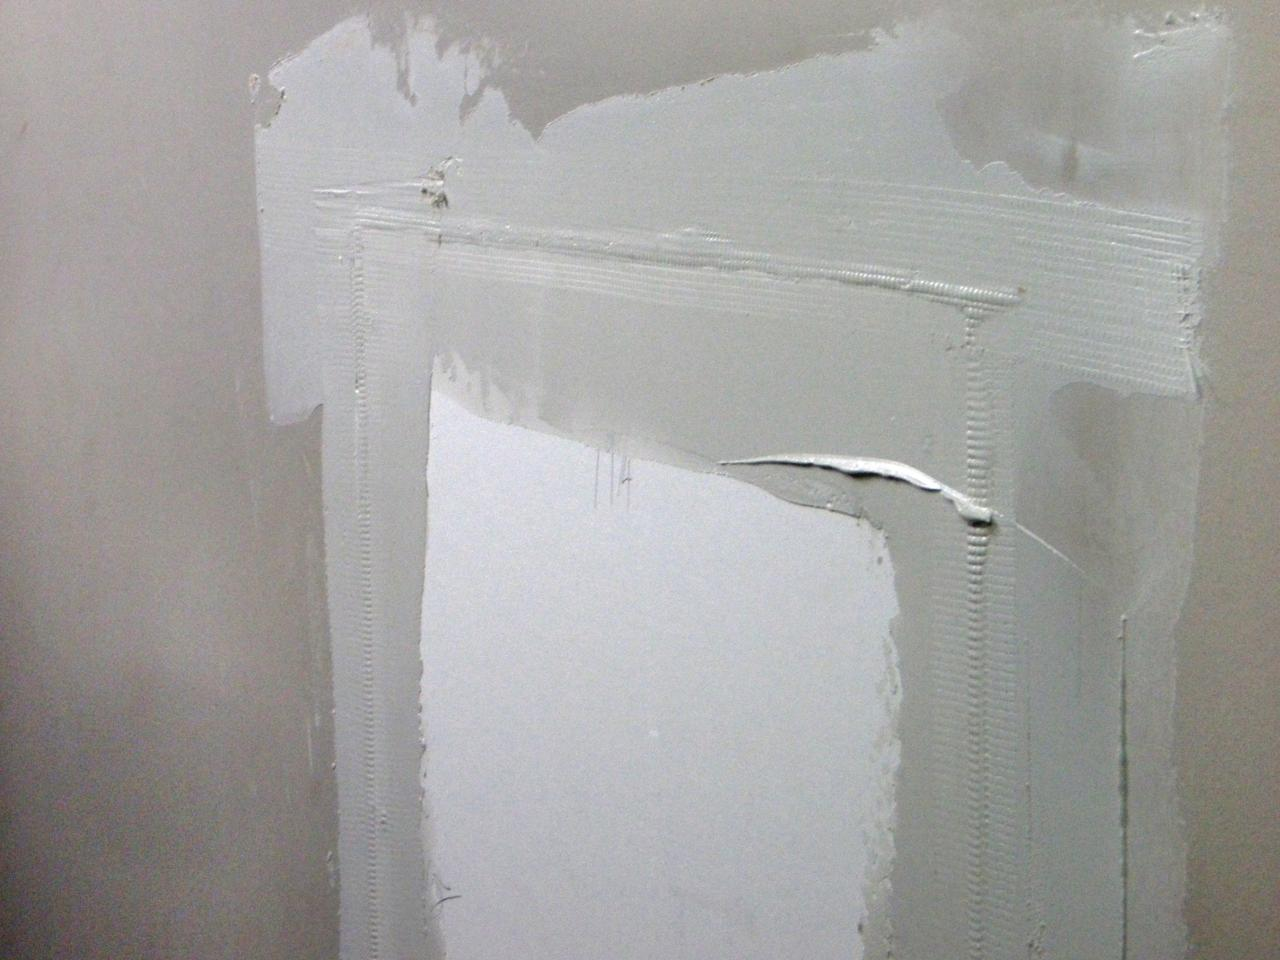 How to repair large hole in drywall - Ultimate How To_drywall Repair Large Hole 05_s4x3